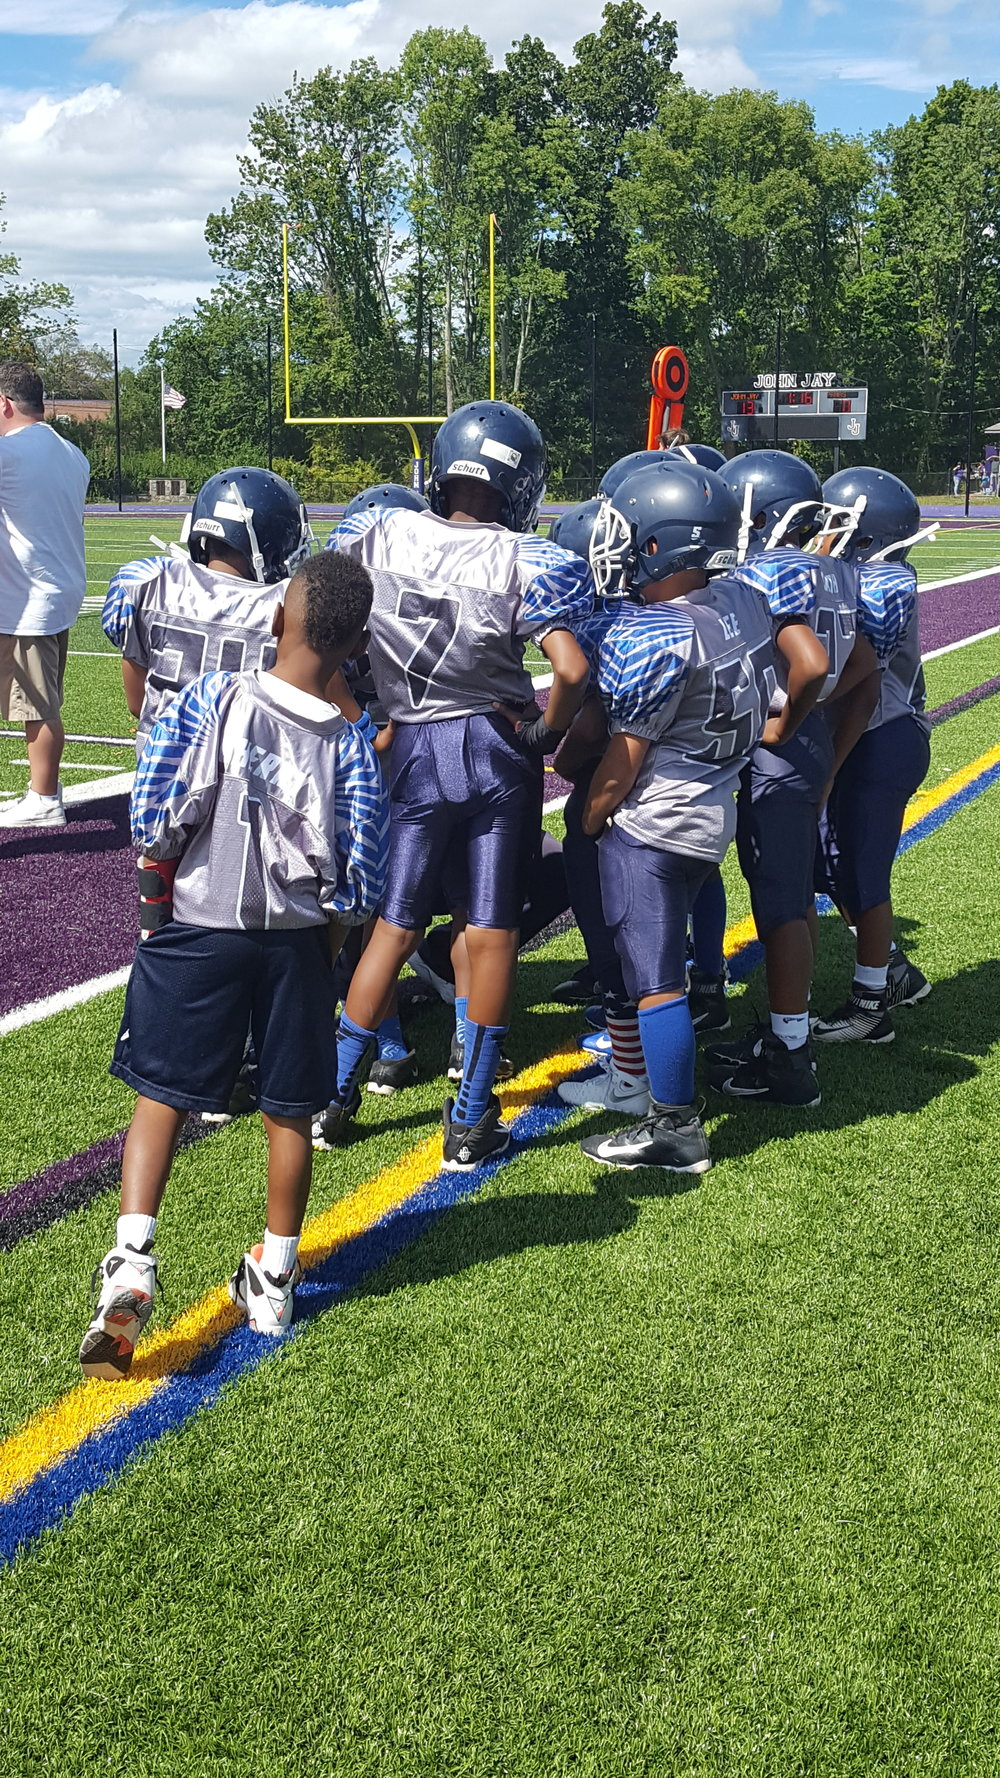 Blue White Navy Blue and Grey Football Uniforms, Jersey and Shorts